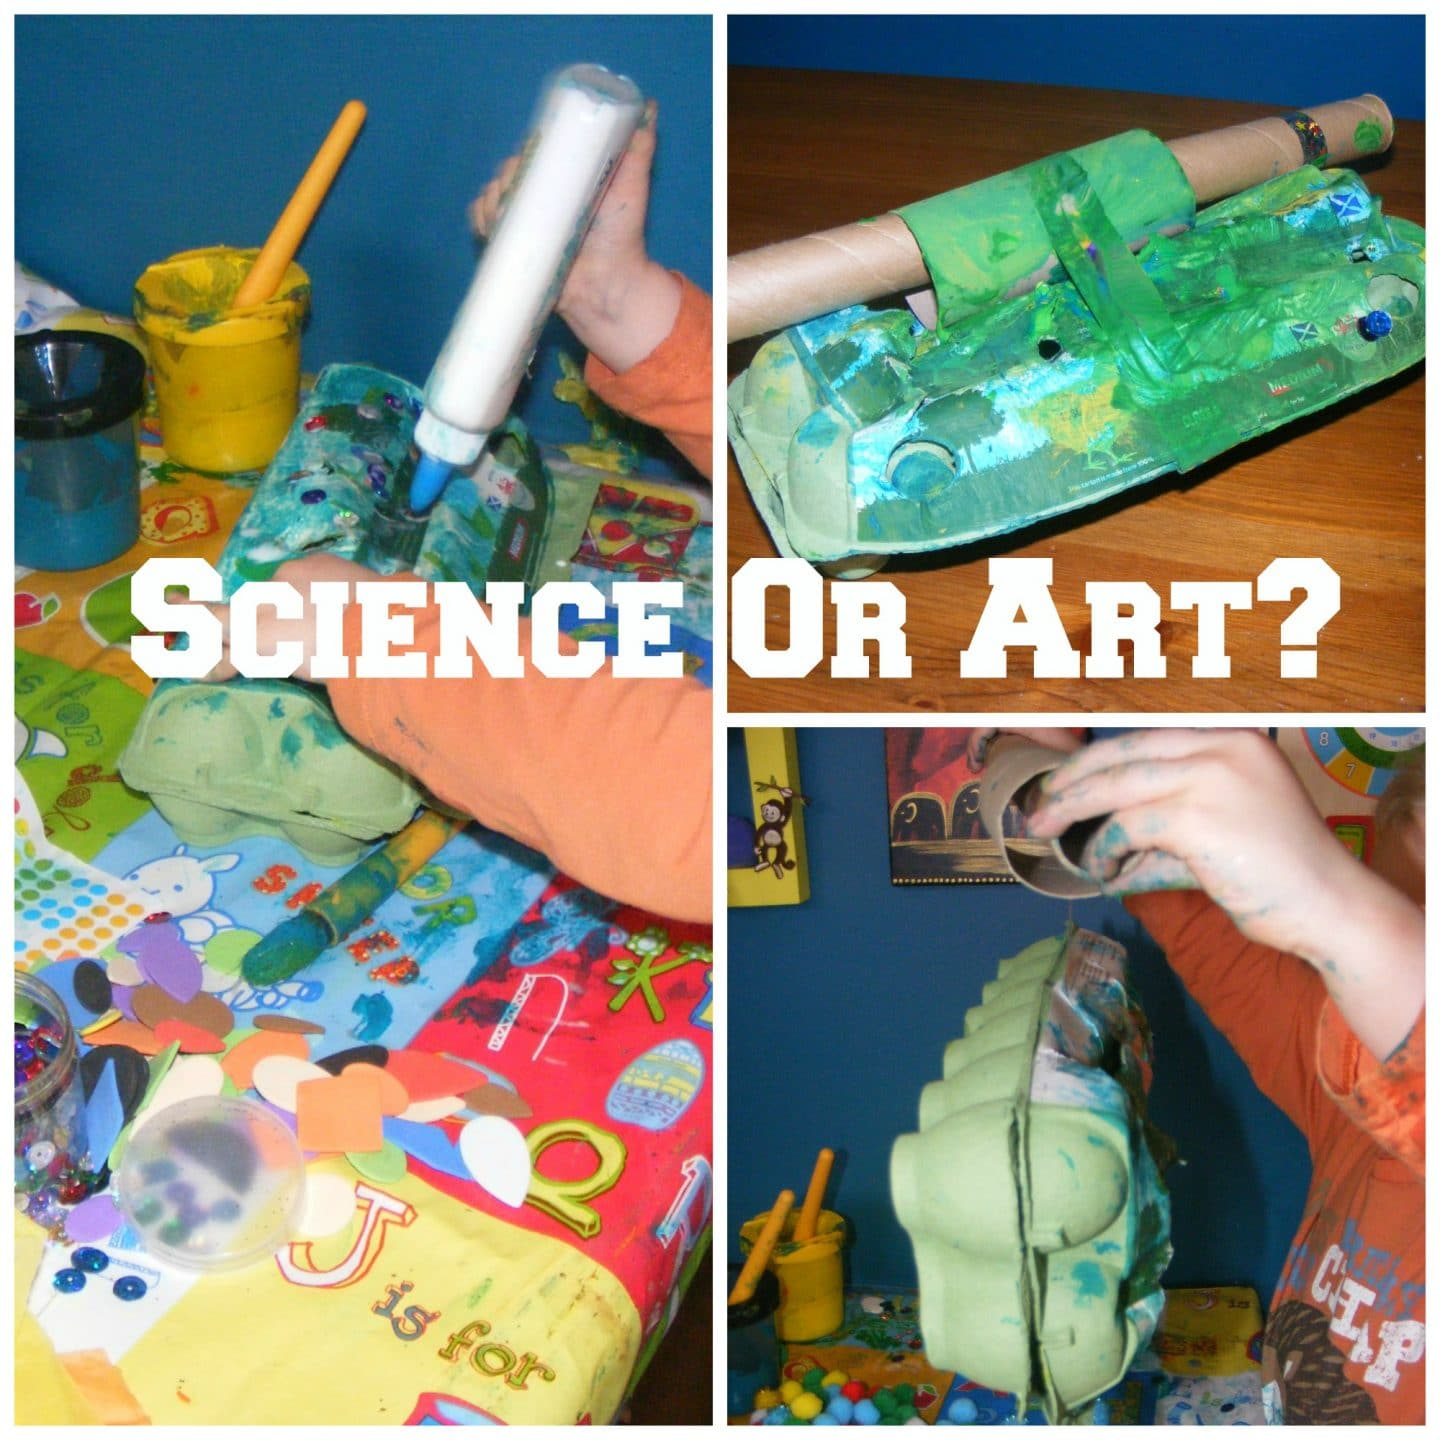 Science or Art?